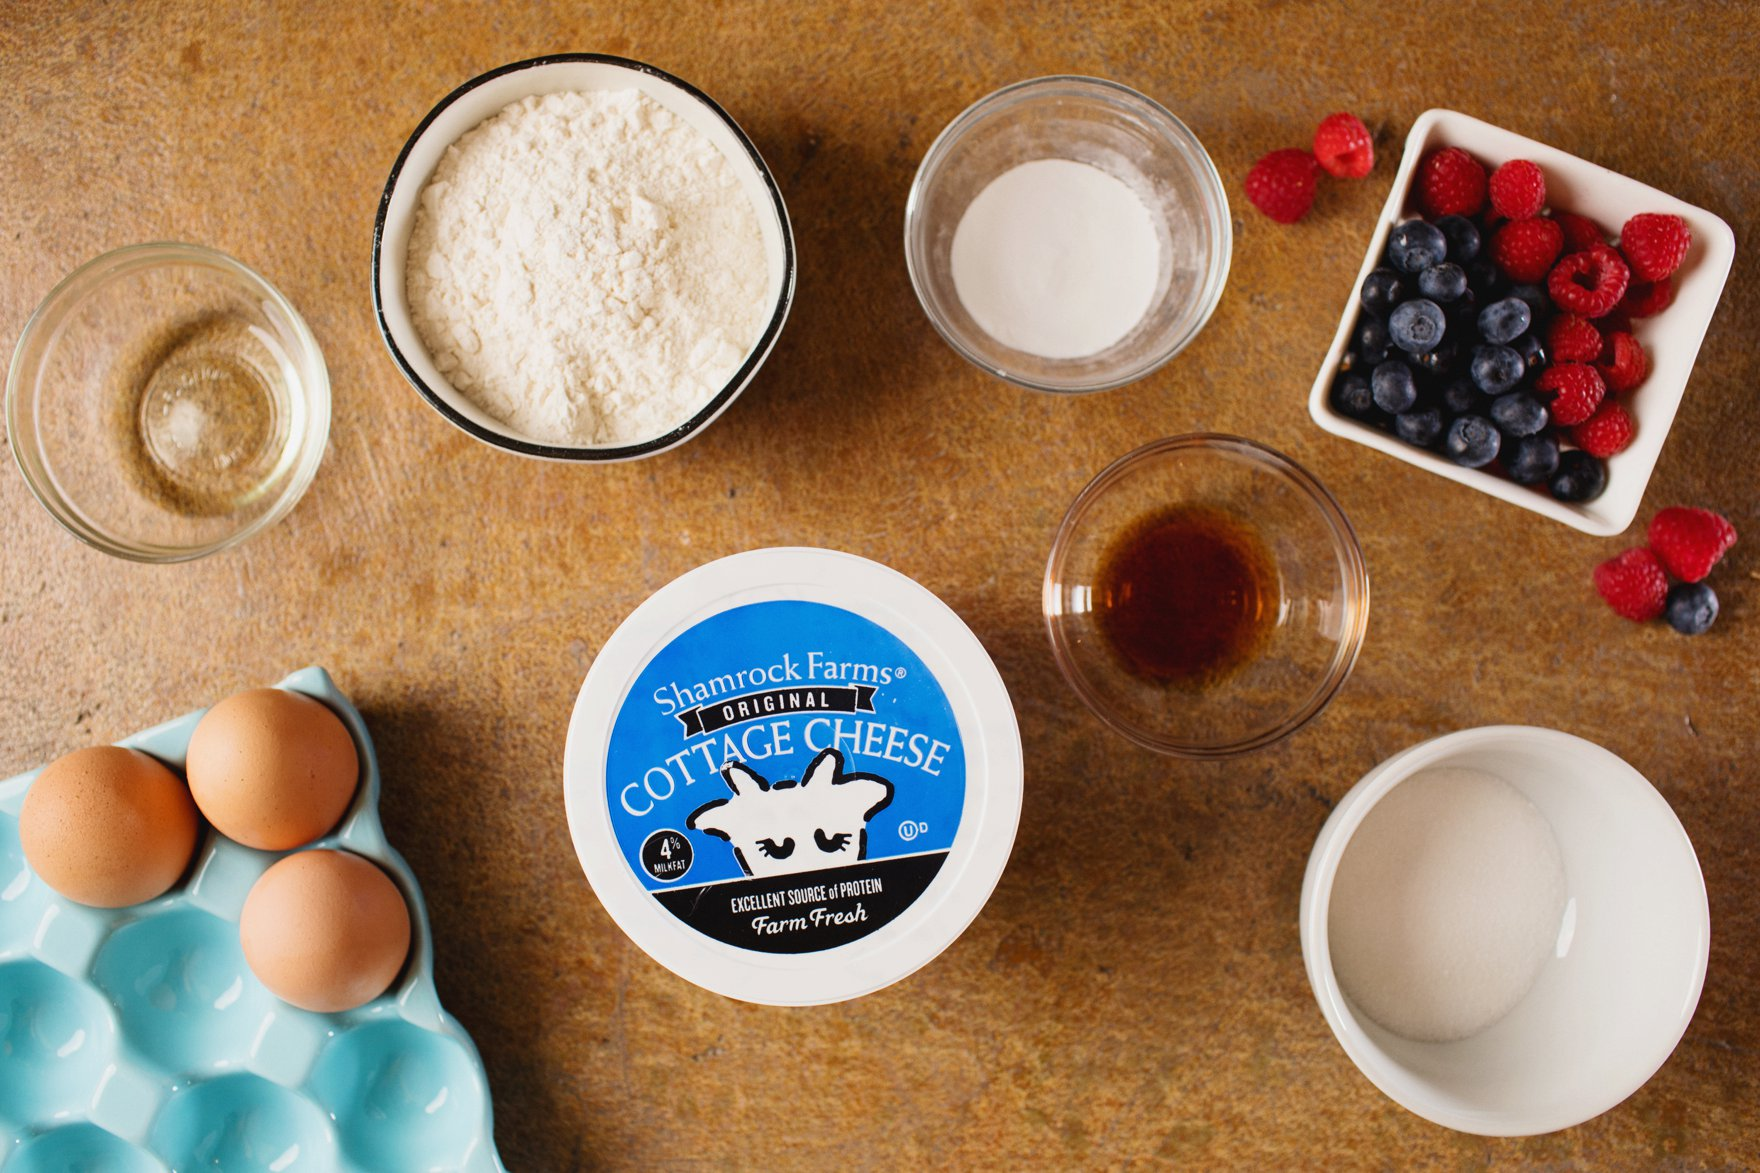 easy protein pancake recipe no protein powder use cottage cheese instead - so easy! Featuring shamrock Farms cottage cheese. whats in a protein pancake ingredients